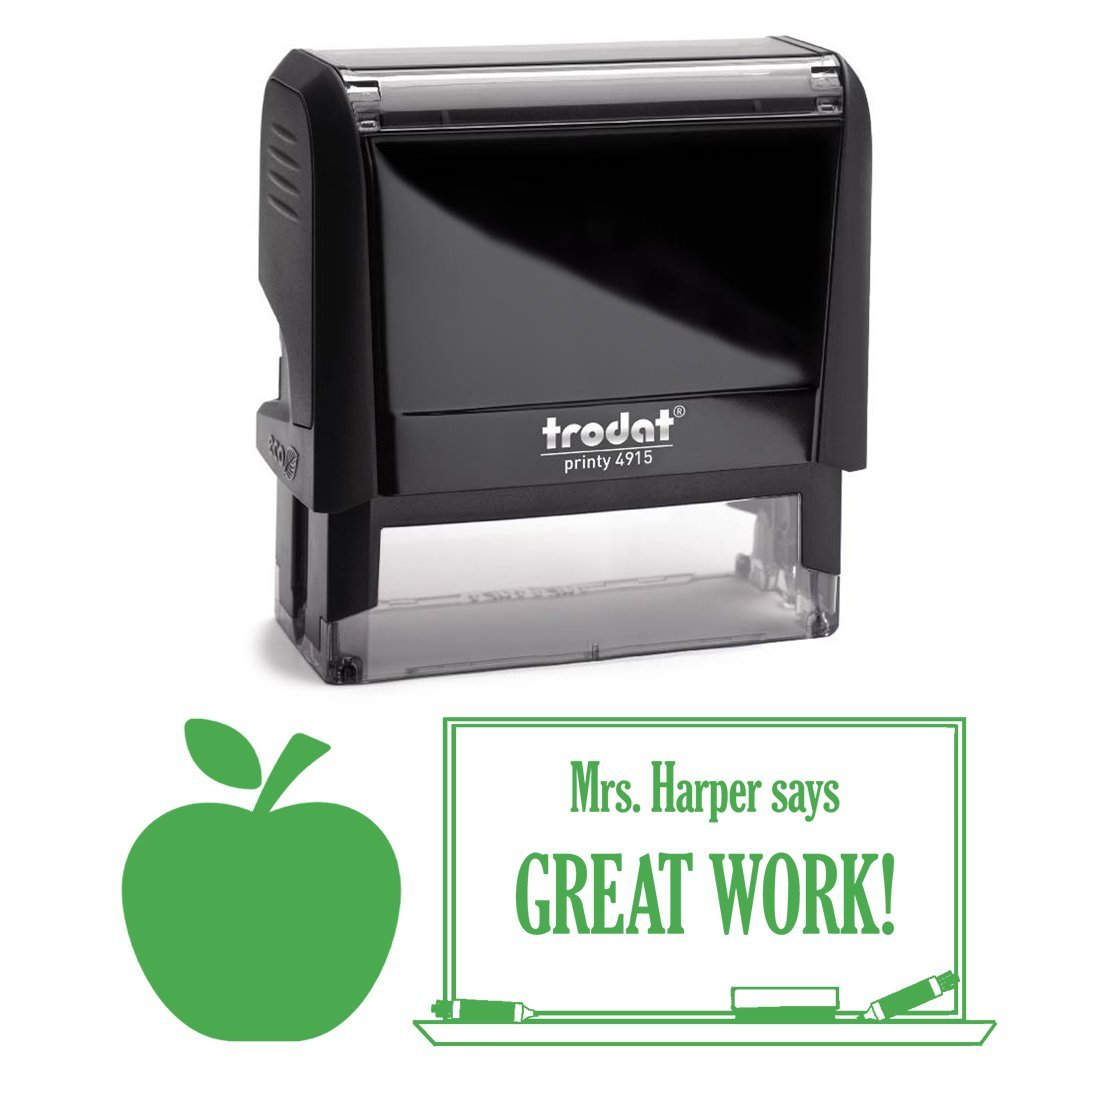 Green Ink, Apple, Customizable Great Work Teacher Stamp, Self Inking, Homework Personalized School Work Stamp, Customized Unique Gift, Personal Classroom Stamper